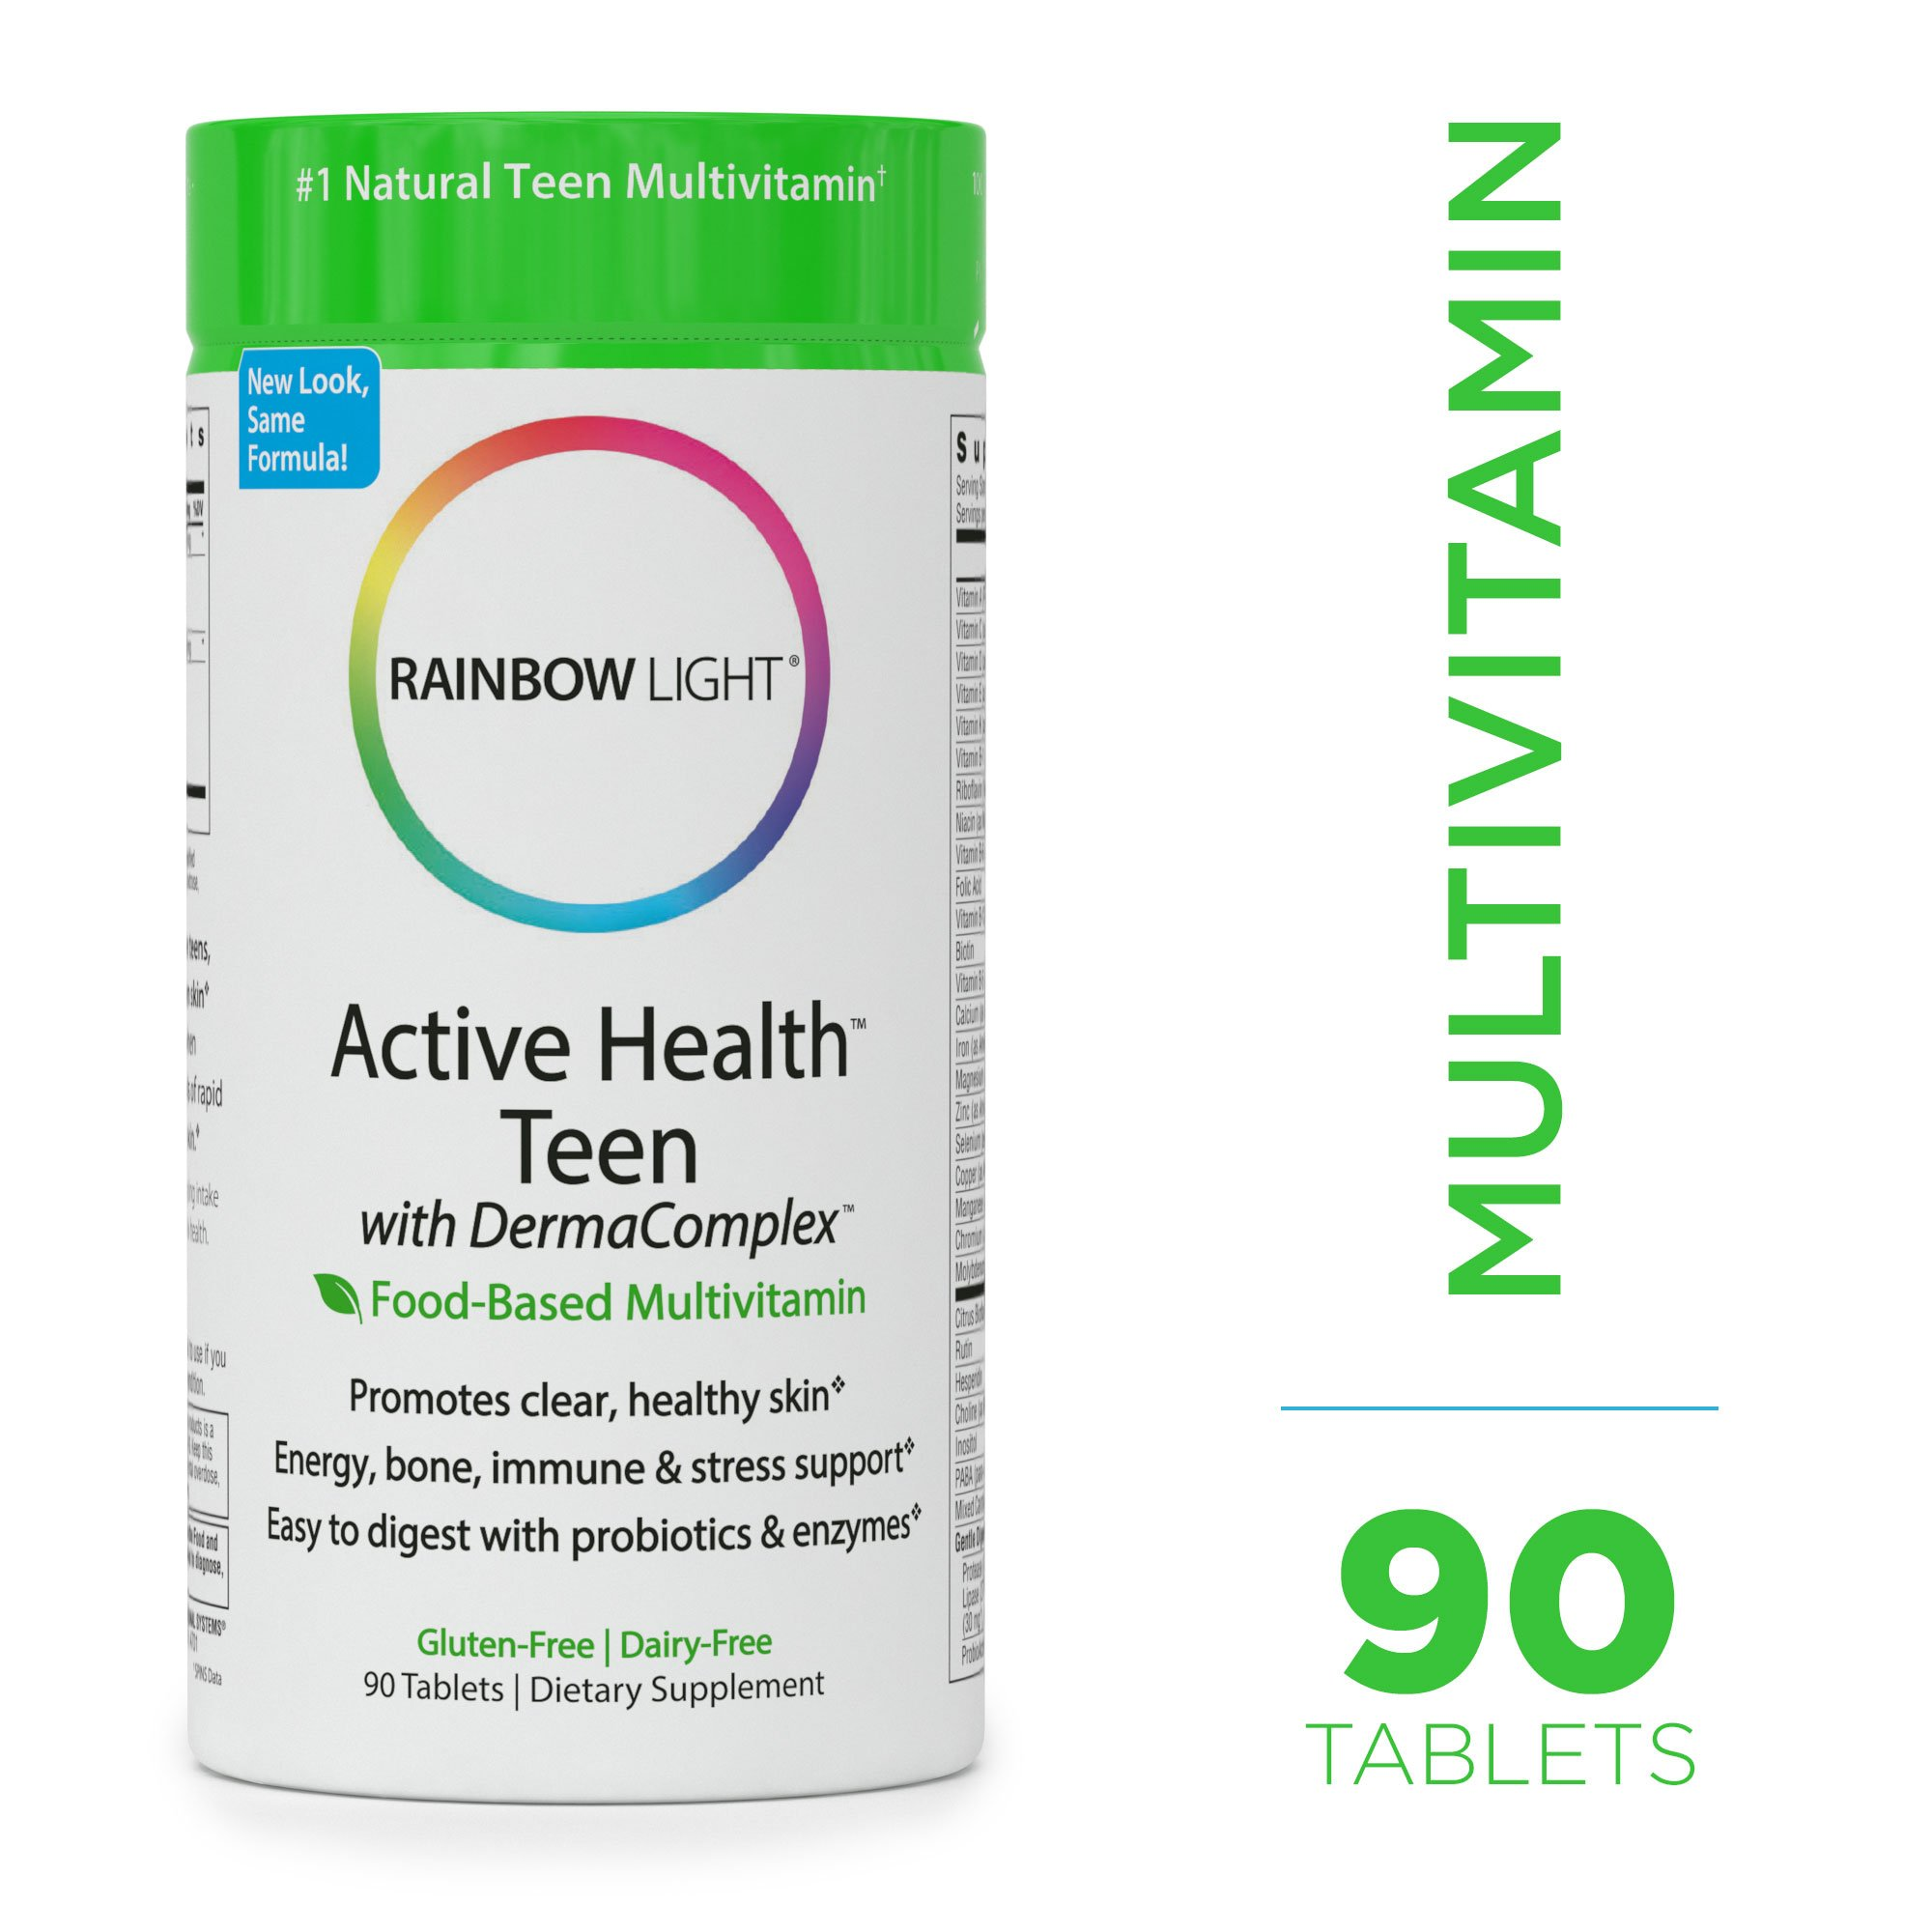 Rainbow Light - Active Health Teen Multivitamin with DermaComplex - Provides Vitamins and Nutrients; Supports Nutrition, Natural Energy, Mood, Brain Health, and Immune System in Teens - 90 Tablets